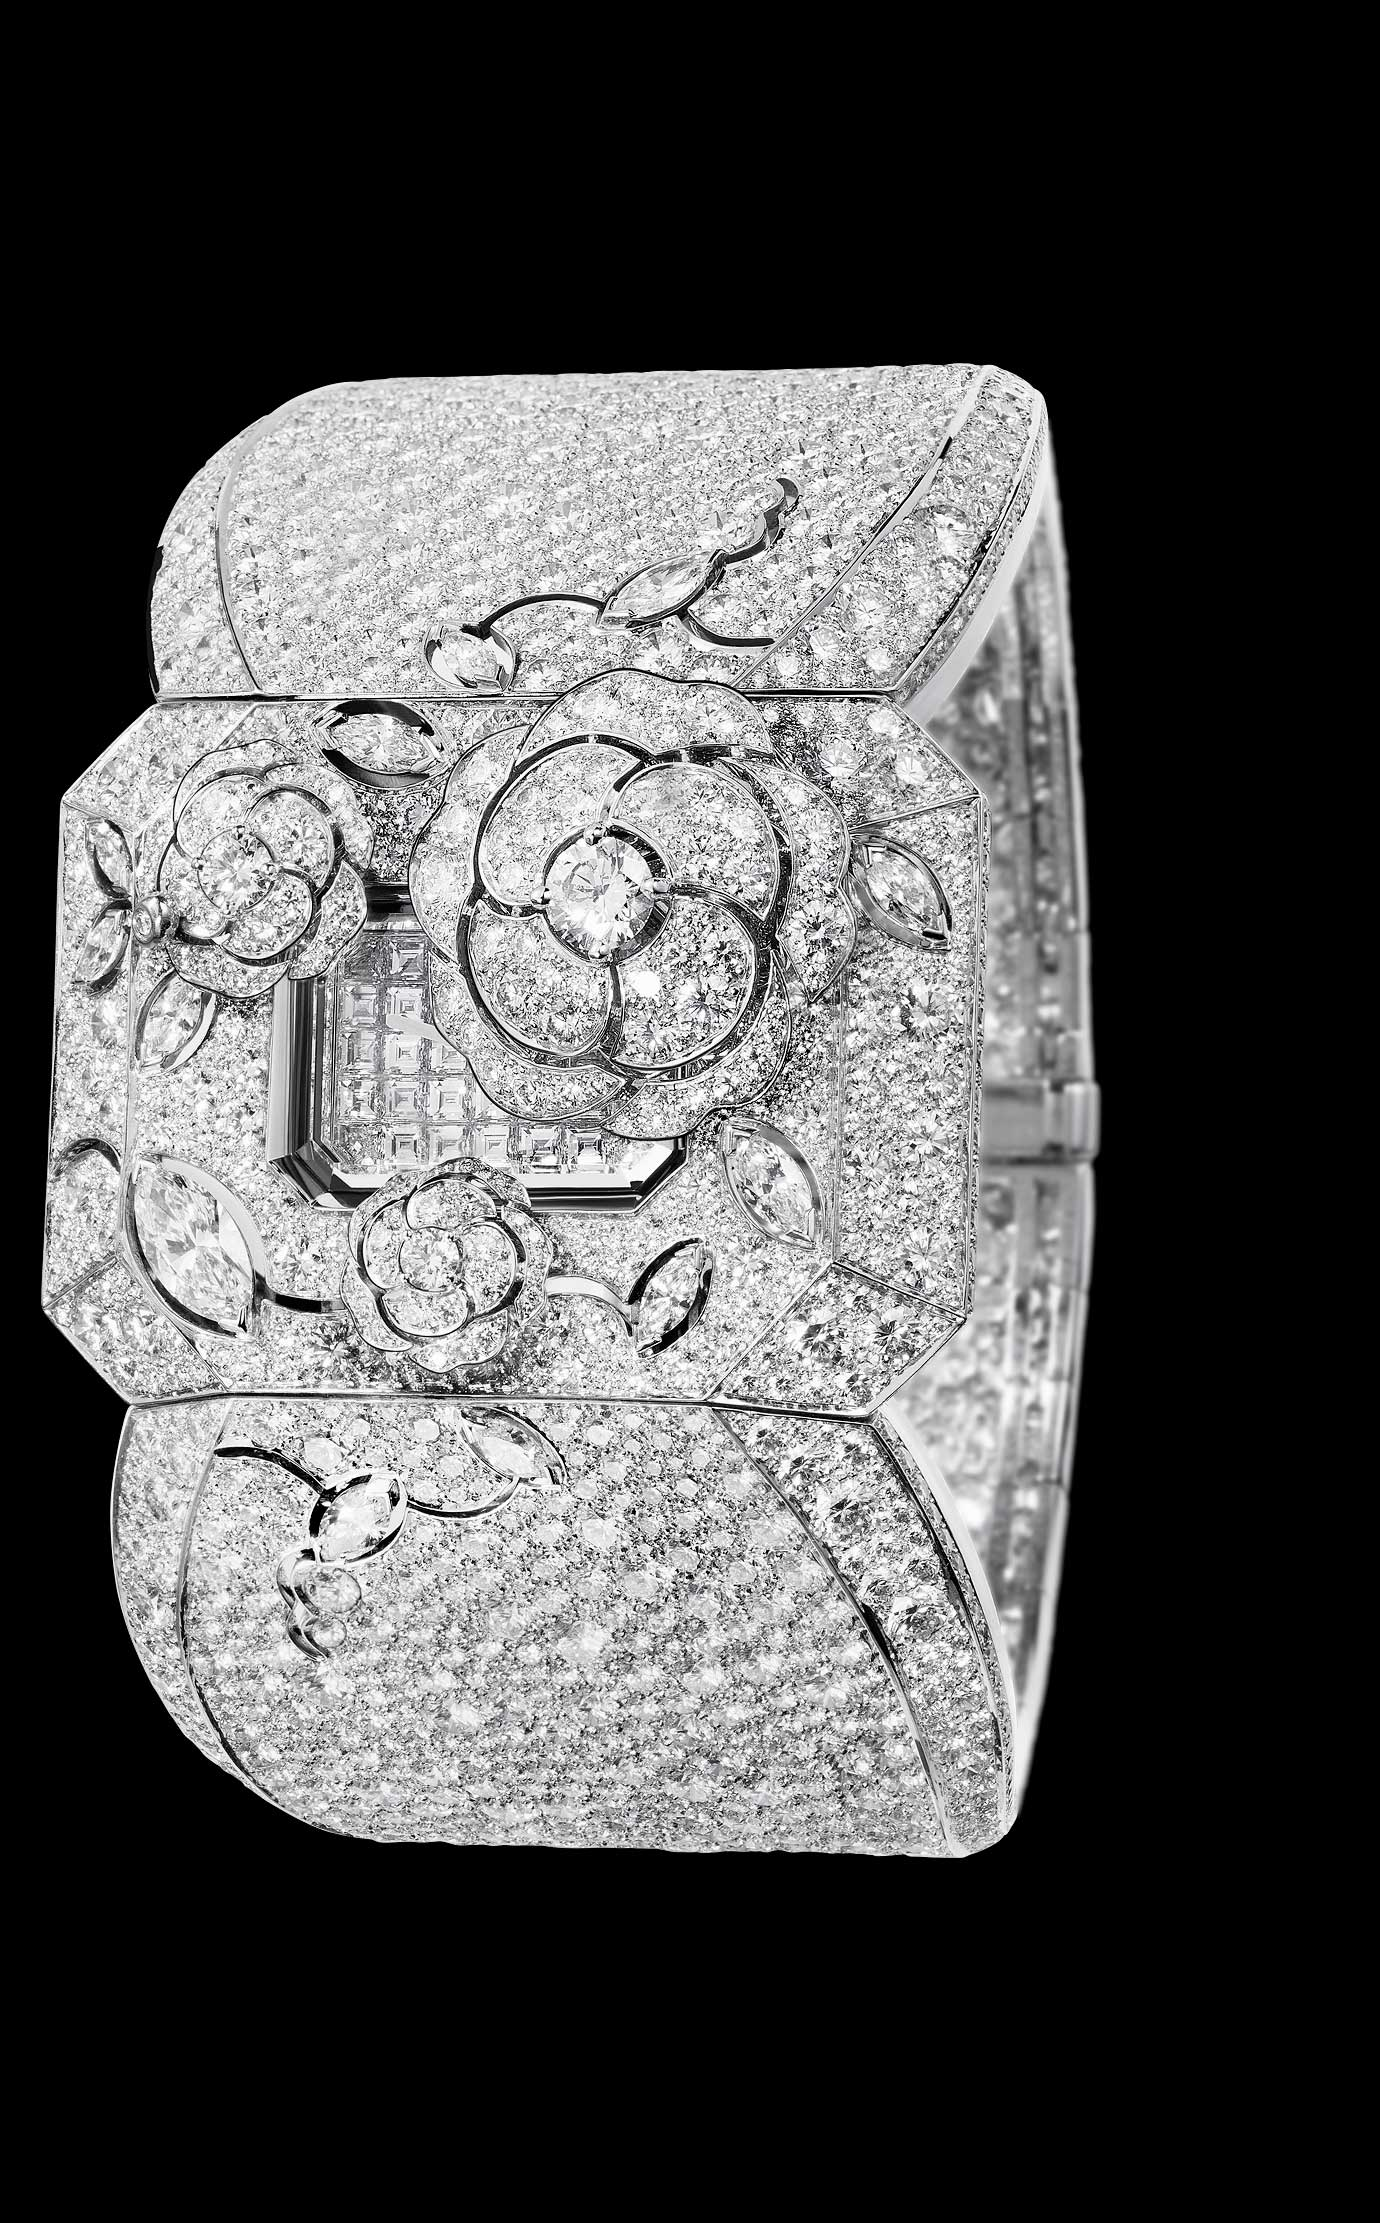 Les Eternelles de CHANEL. Watch in 18K white gold and diamonds. High precision quartz movement. - Closed